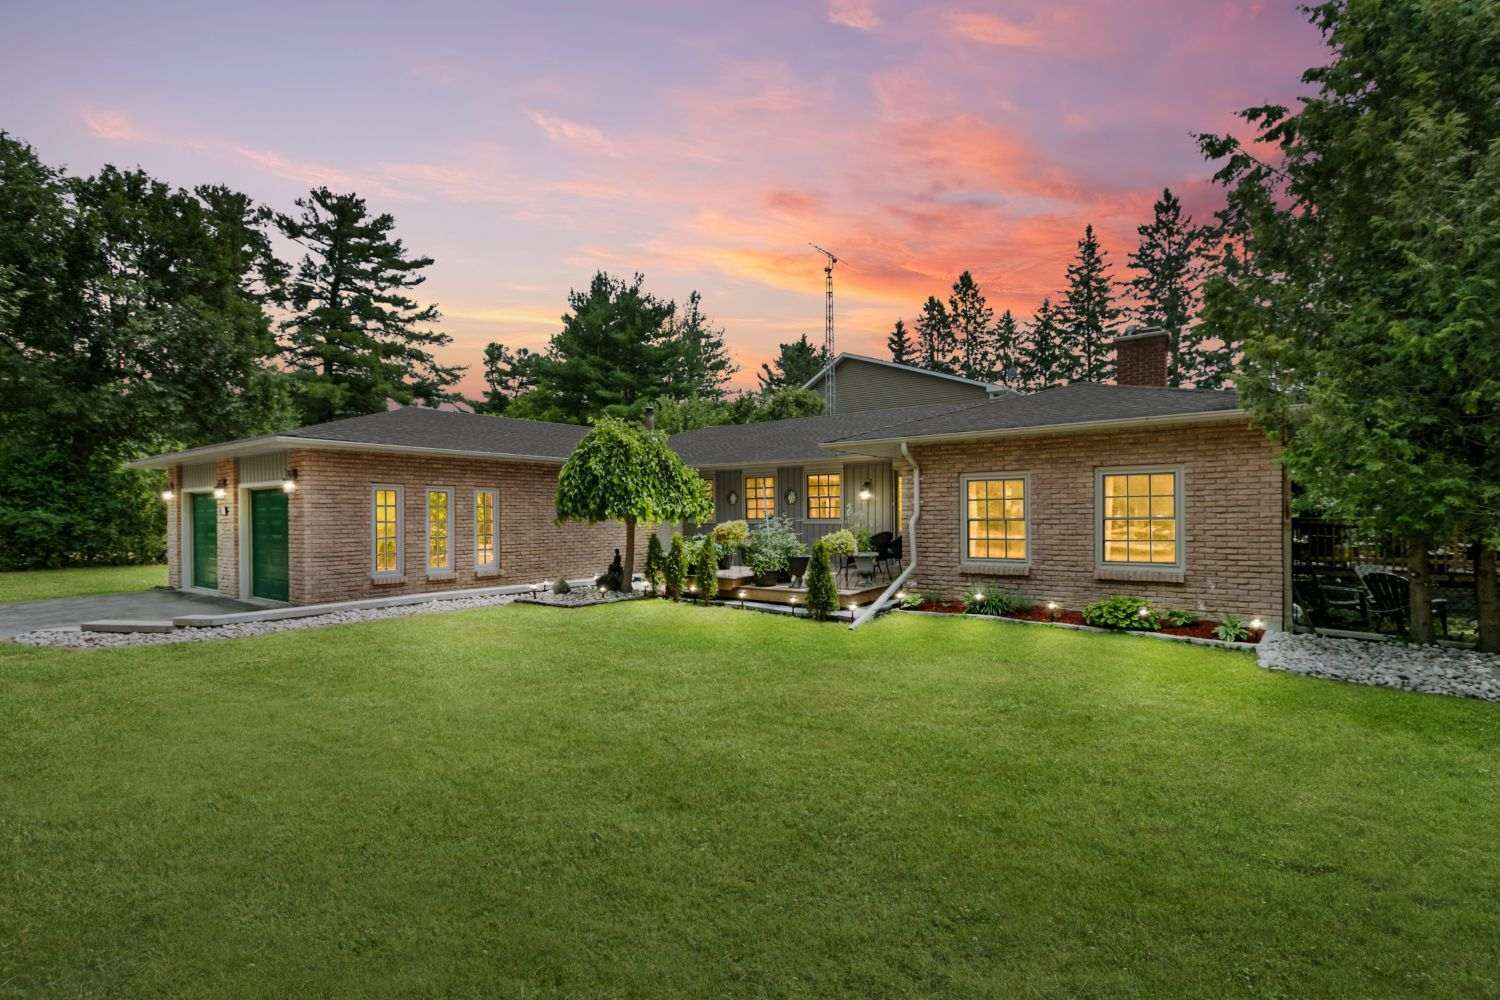 Main Photo: 32 Park Rd in Whitby: Freehold for sale : MLS®# E4827744